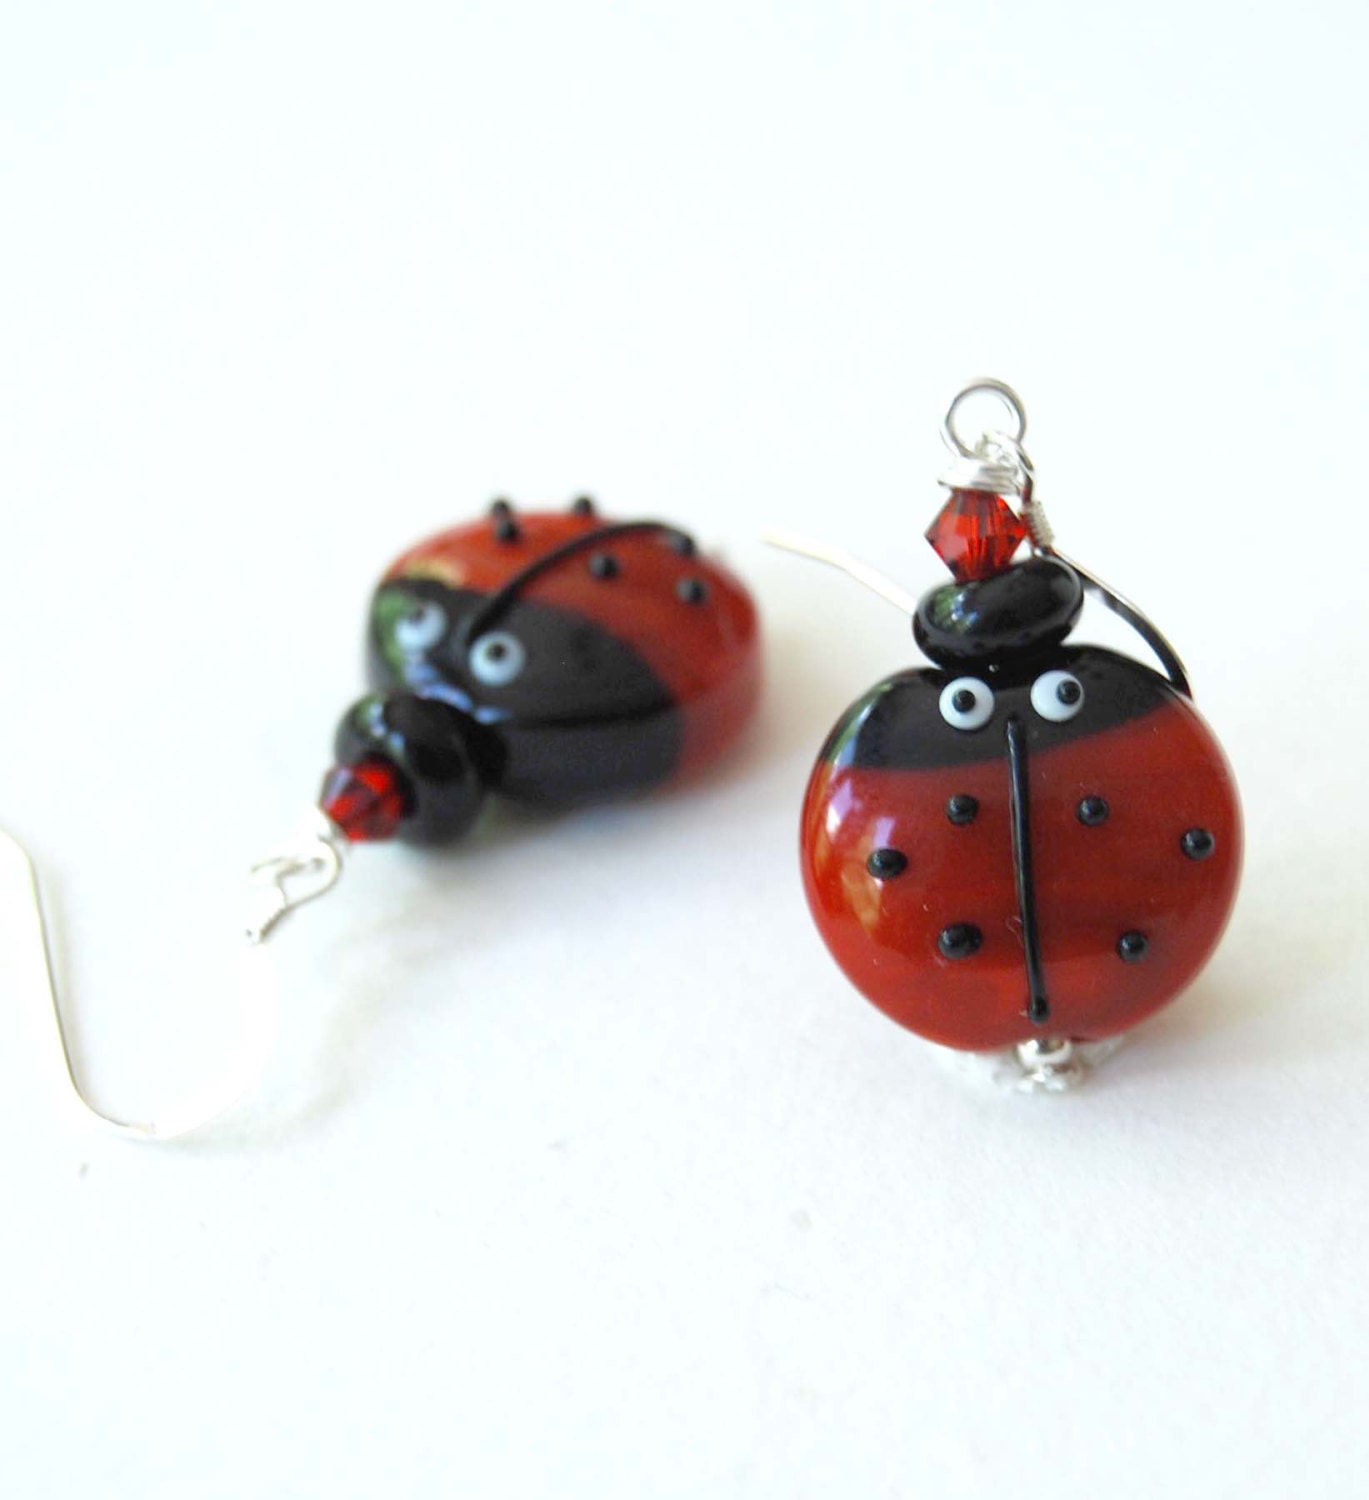 ladybug earrings earrings garden earrings lwork